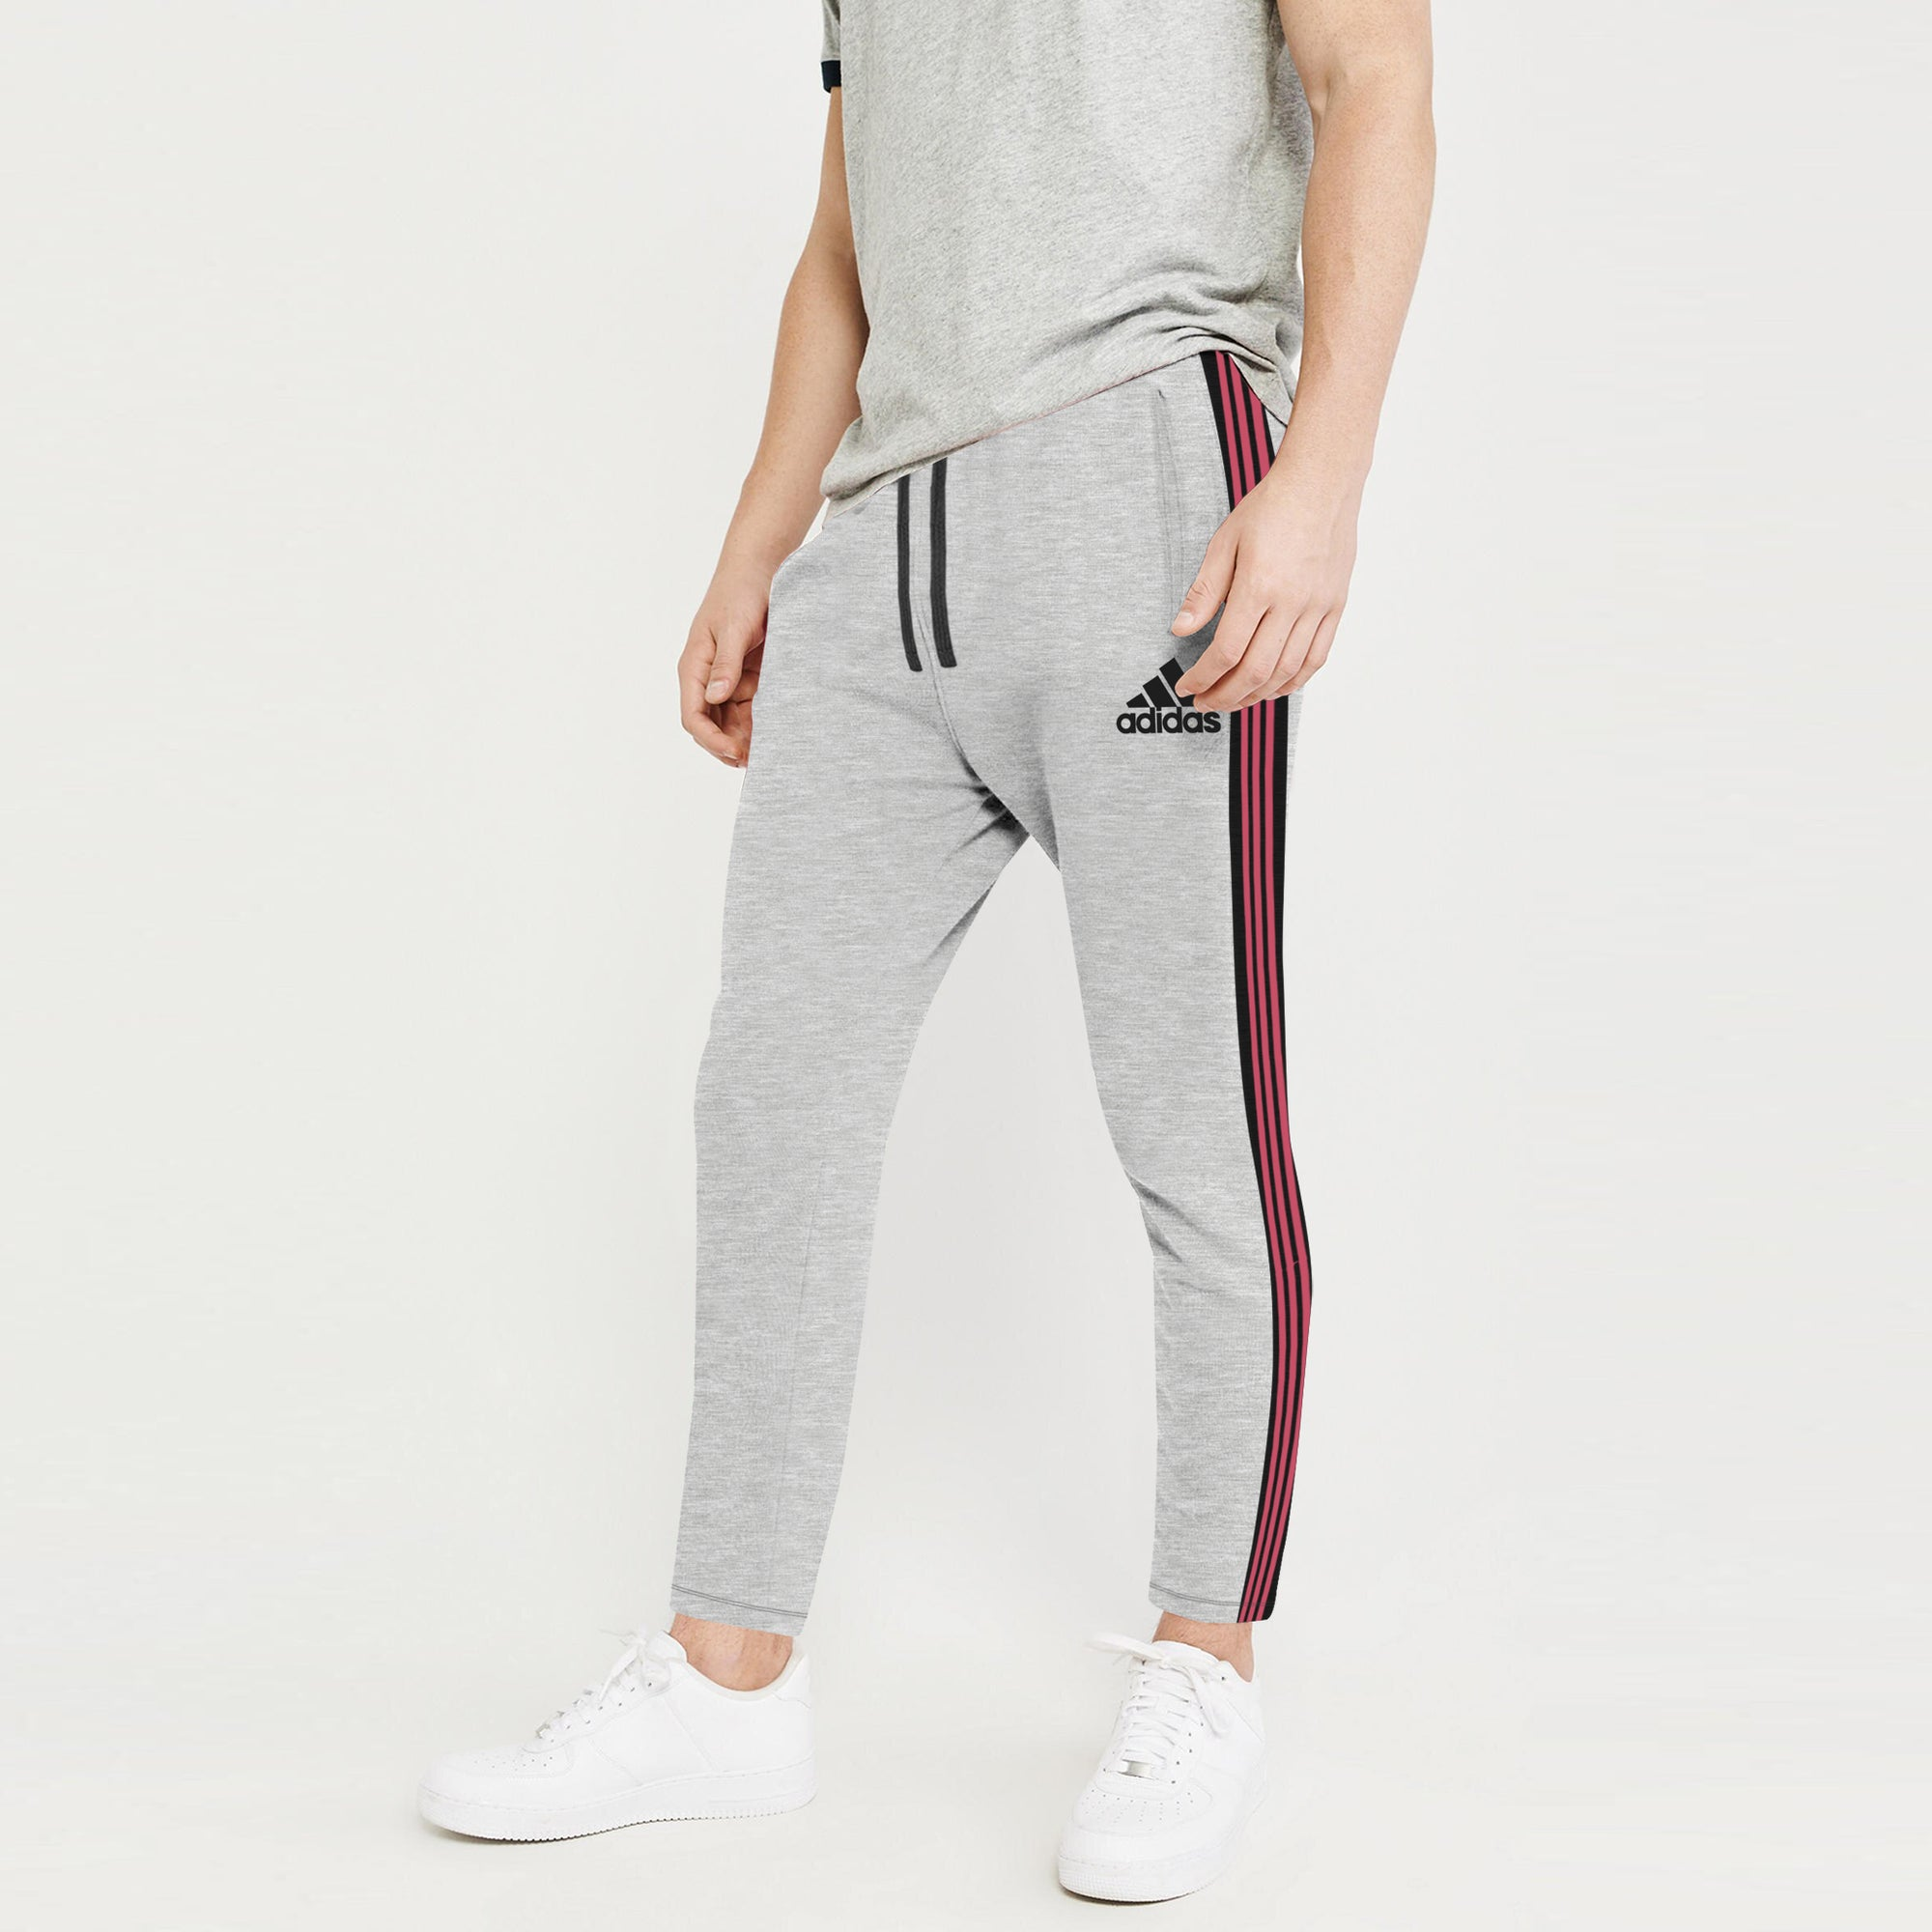 Adidas Single Jersey Regular Fit Jogger Trouser For Men-Grey With Charcoal & Pink Stripe-BE8786